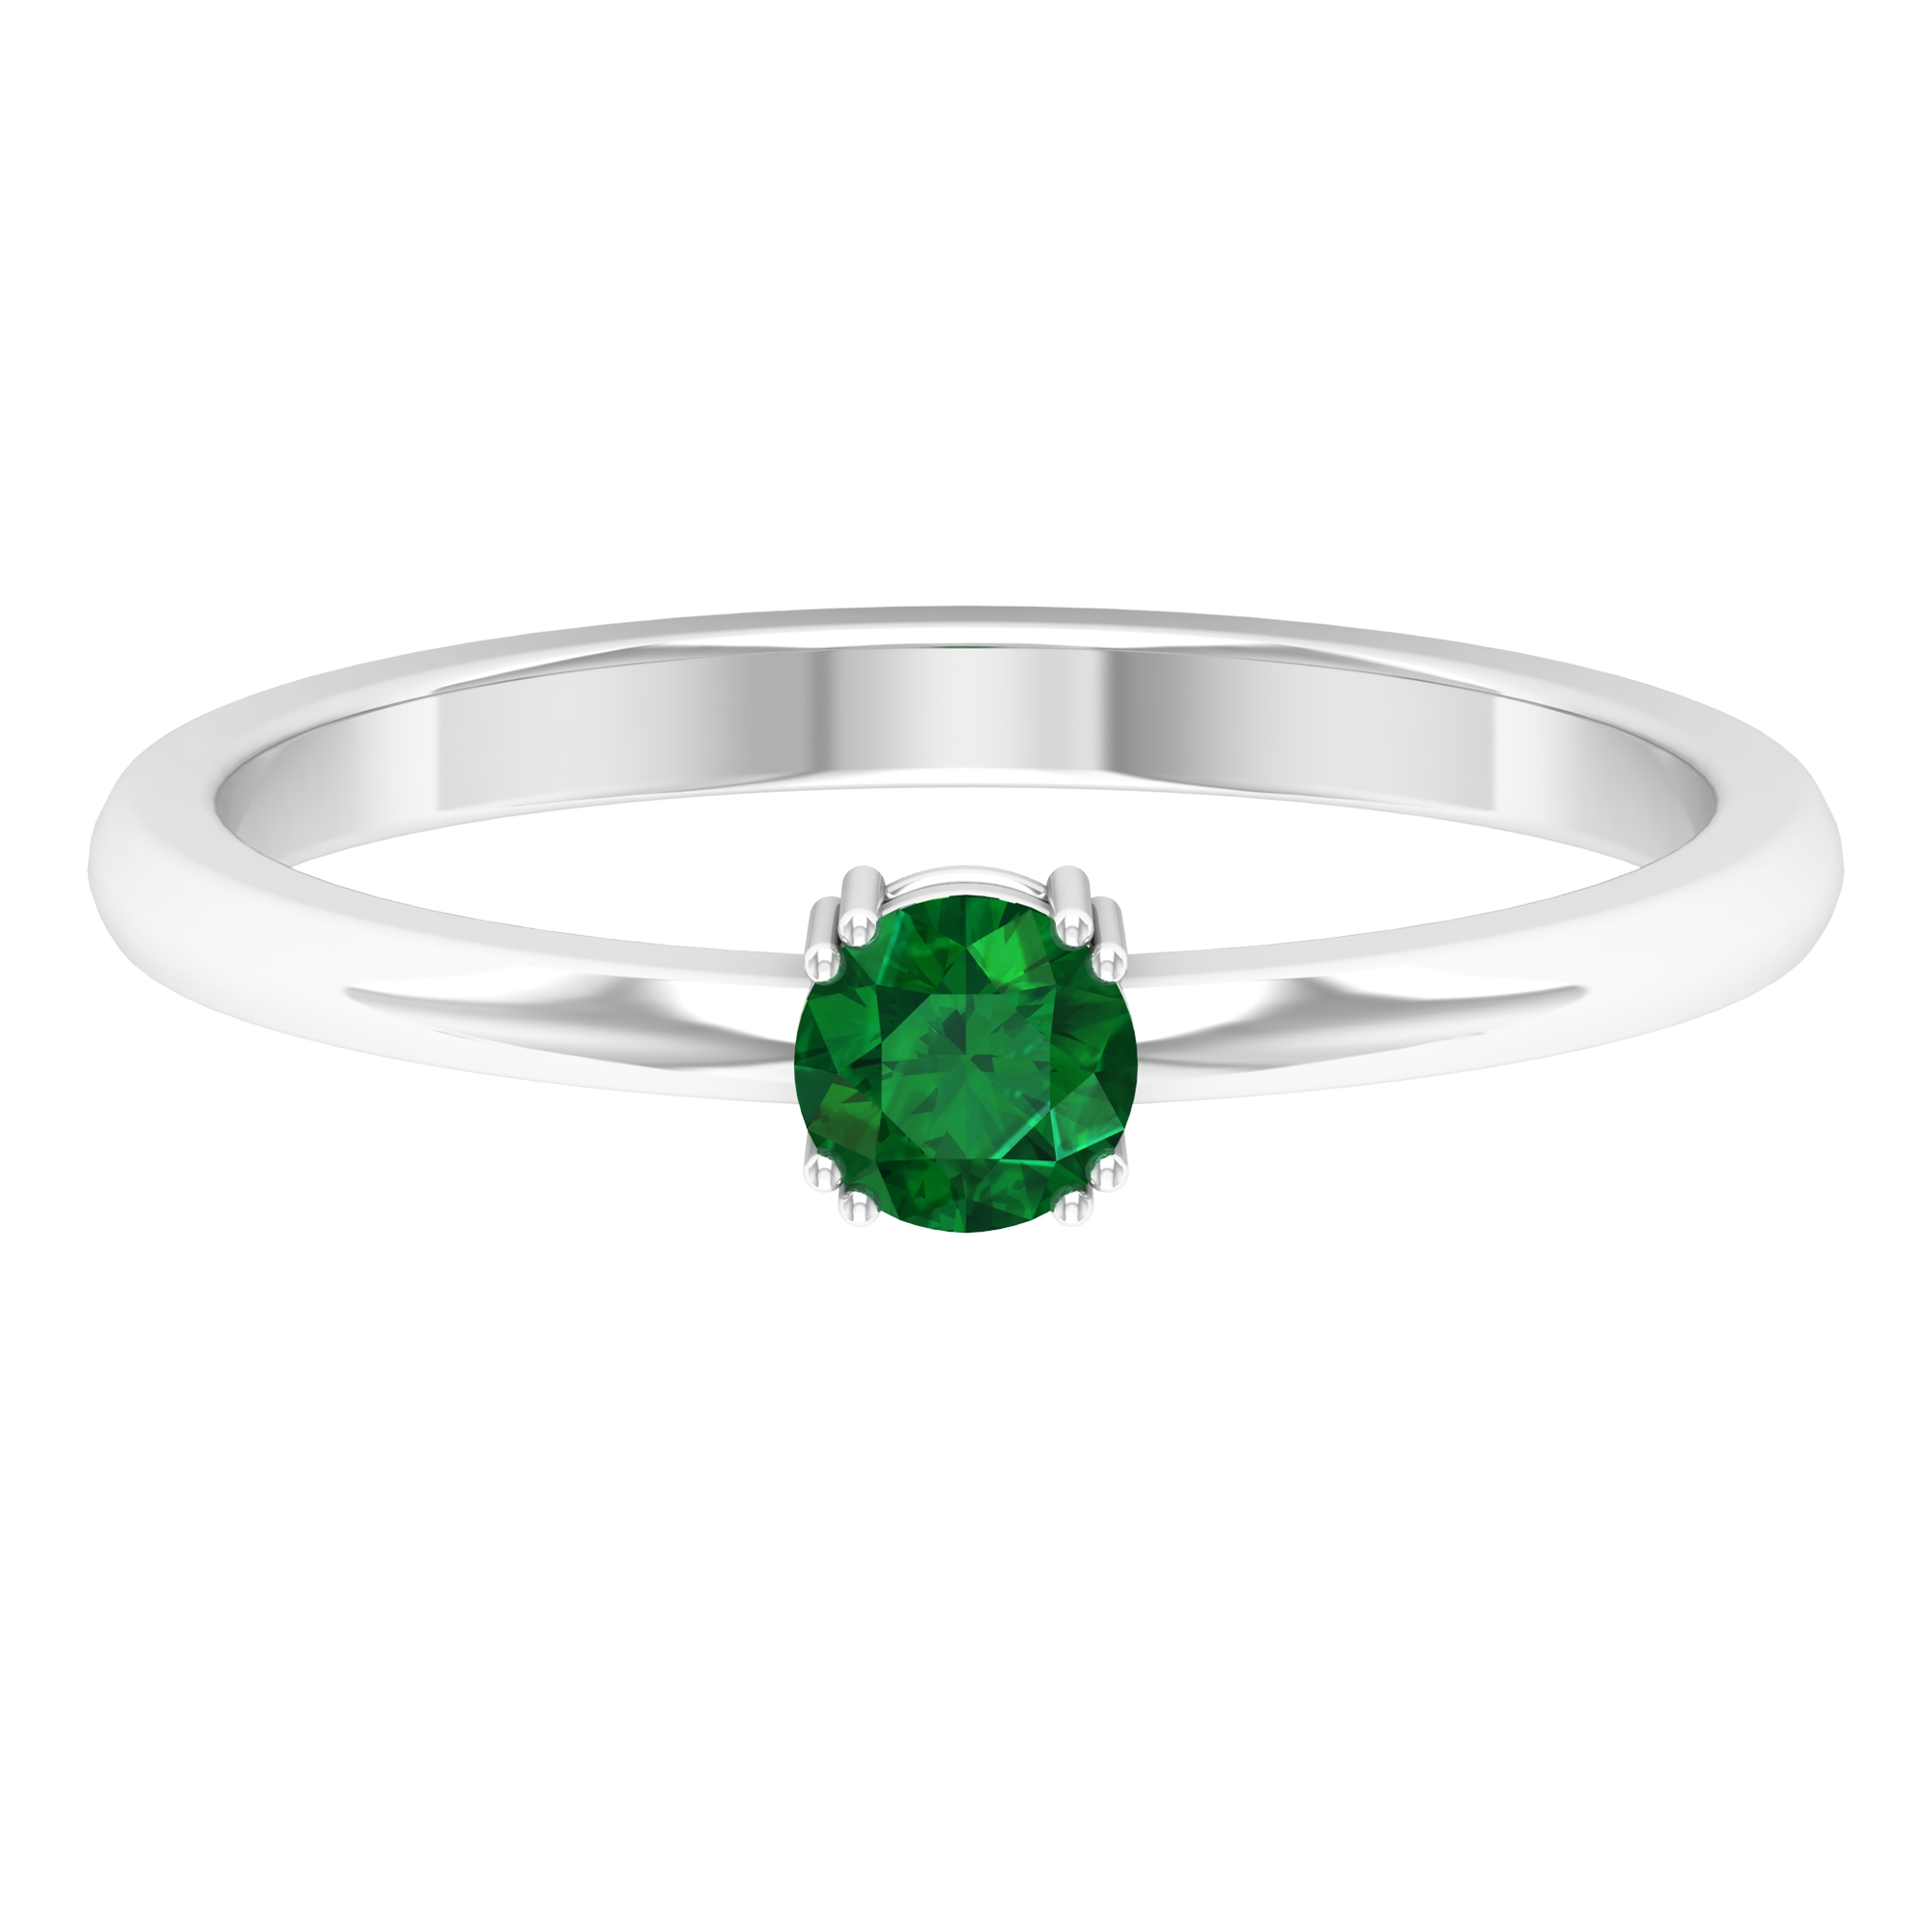 4 MM Round Cut Emerald Solitaire Ring in Double Prong Setting